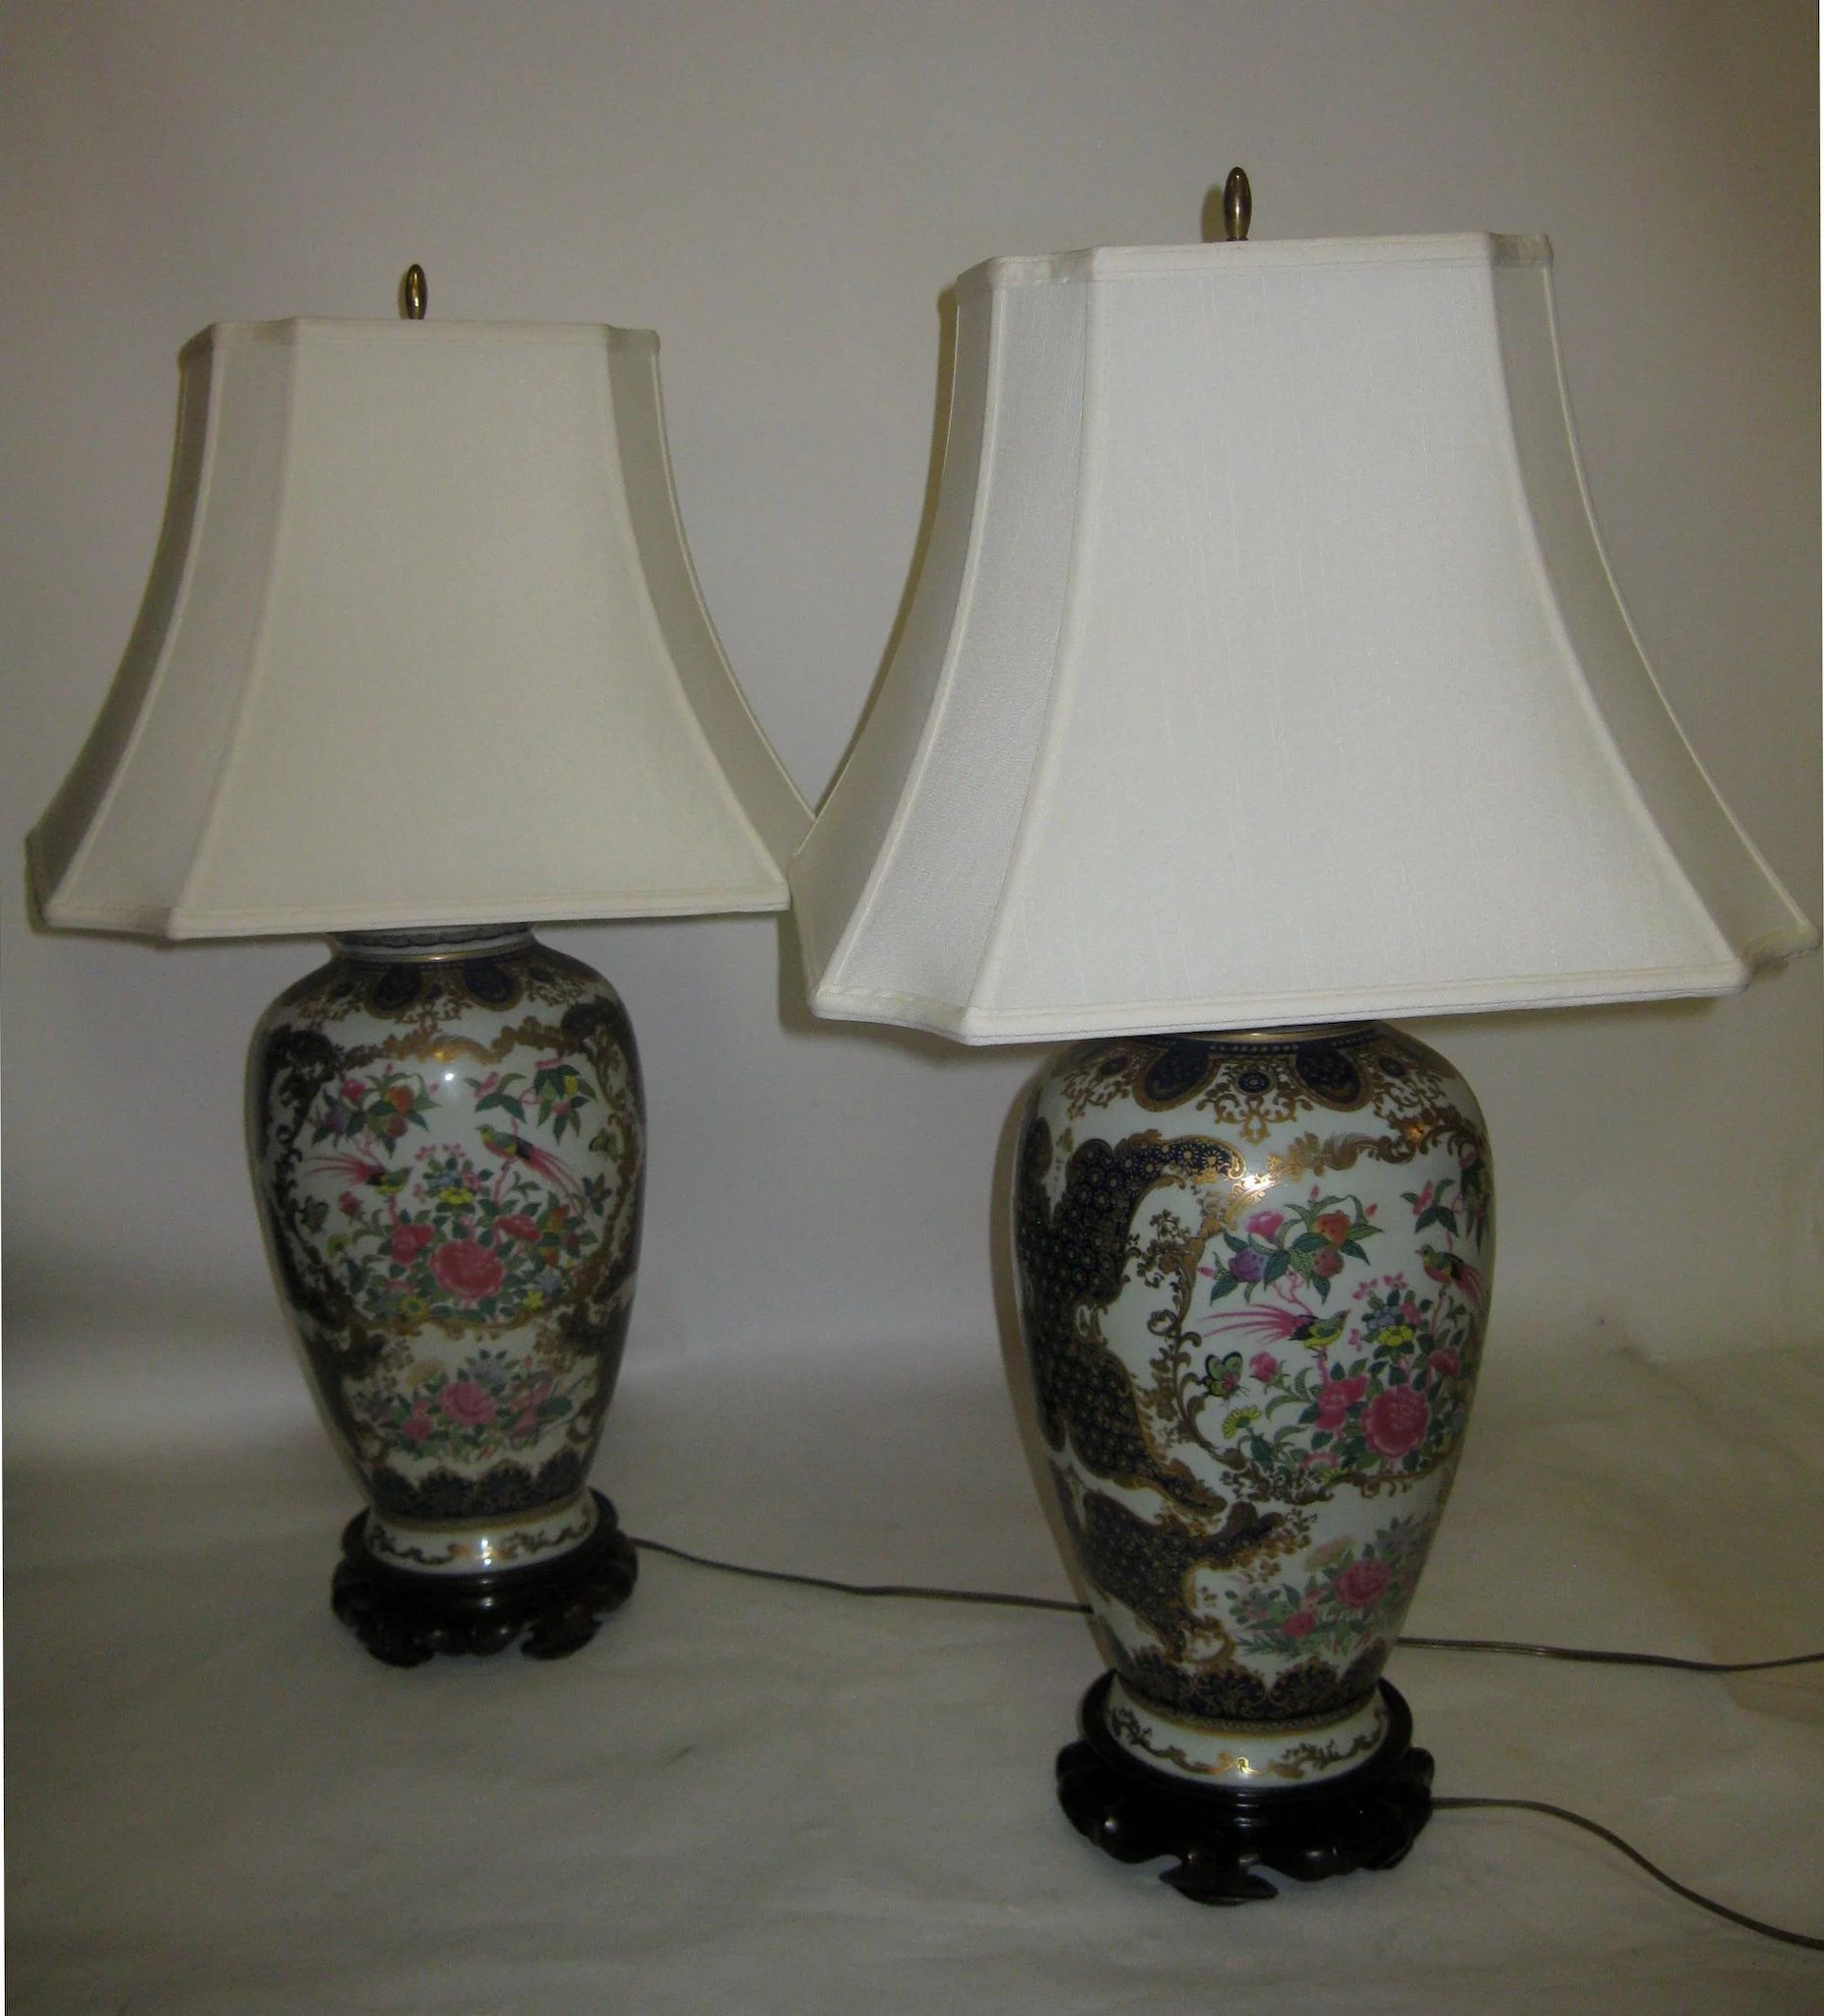 Vintage pair cobalt chinese vase lamps with bird motif savannah vintage pair cobalt chinese vase lamps with bird motif click to expand reviewsmspy